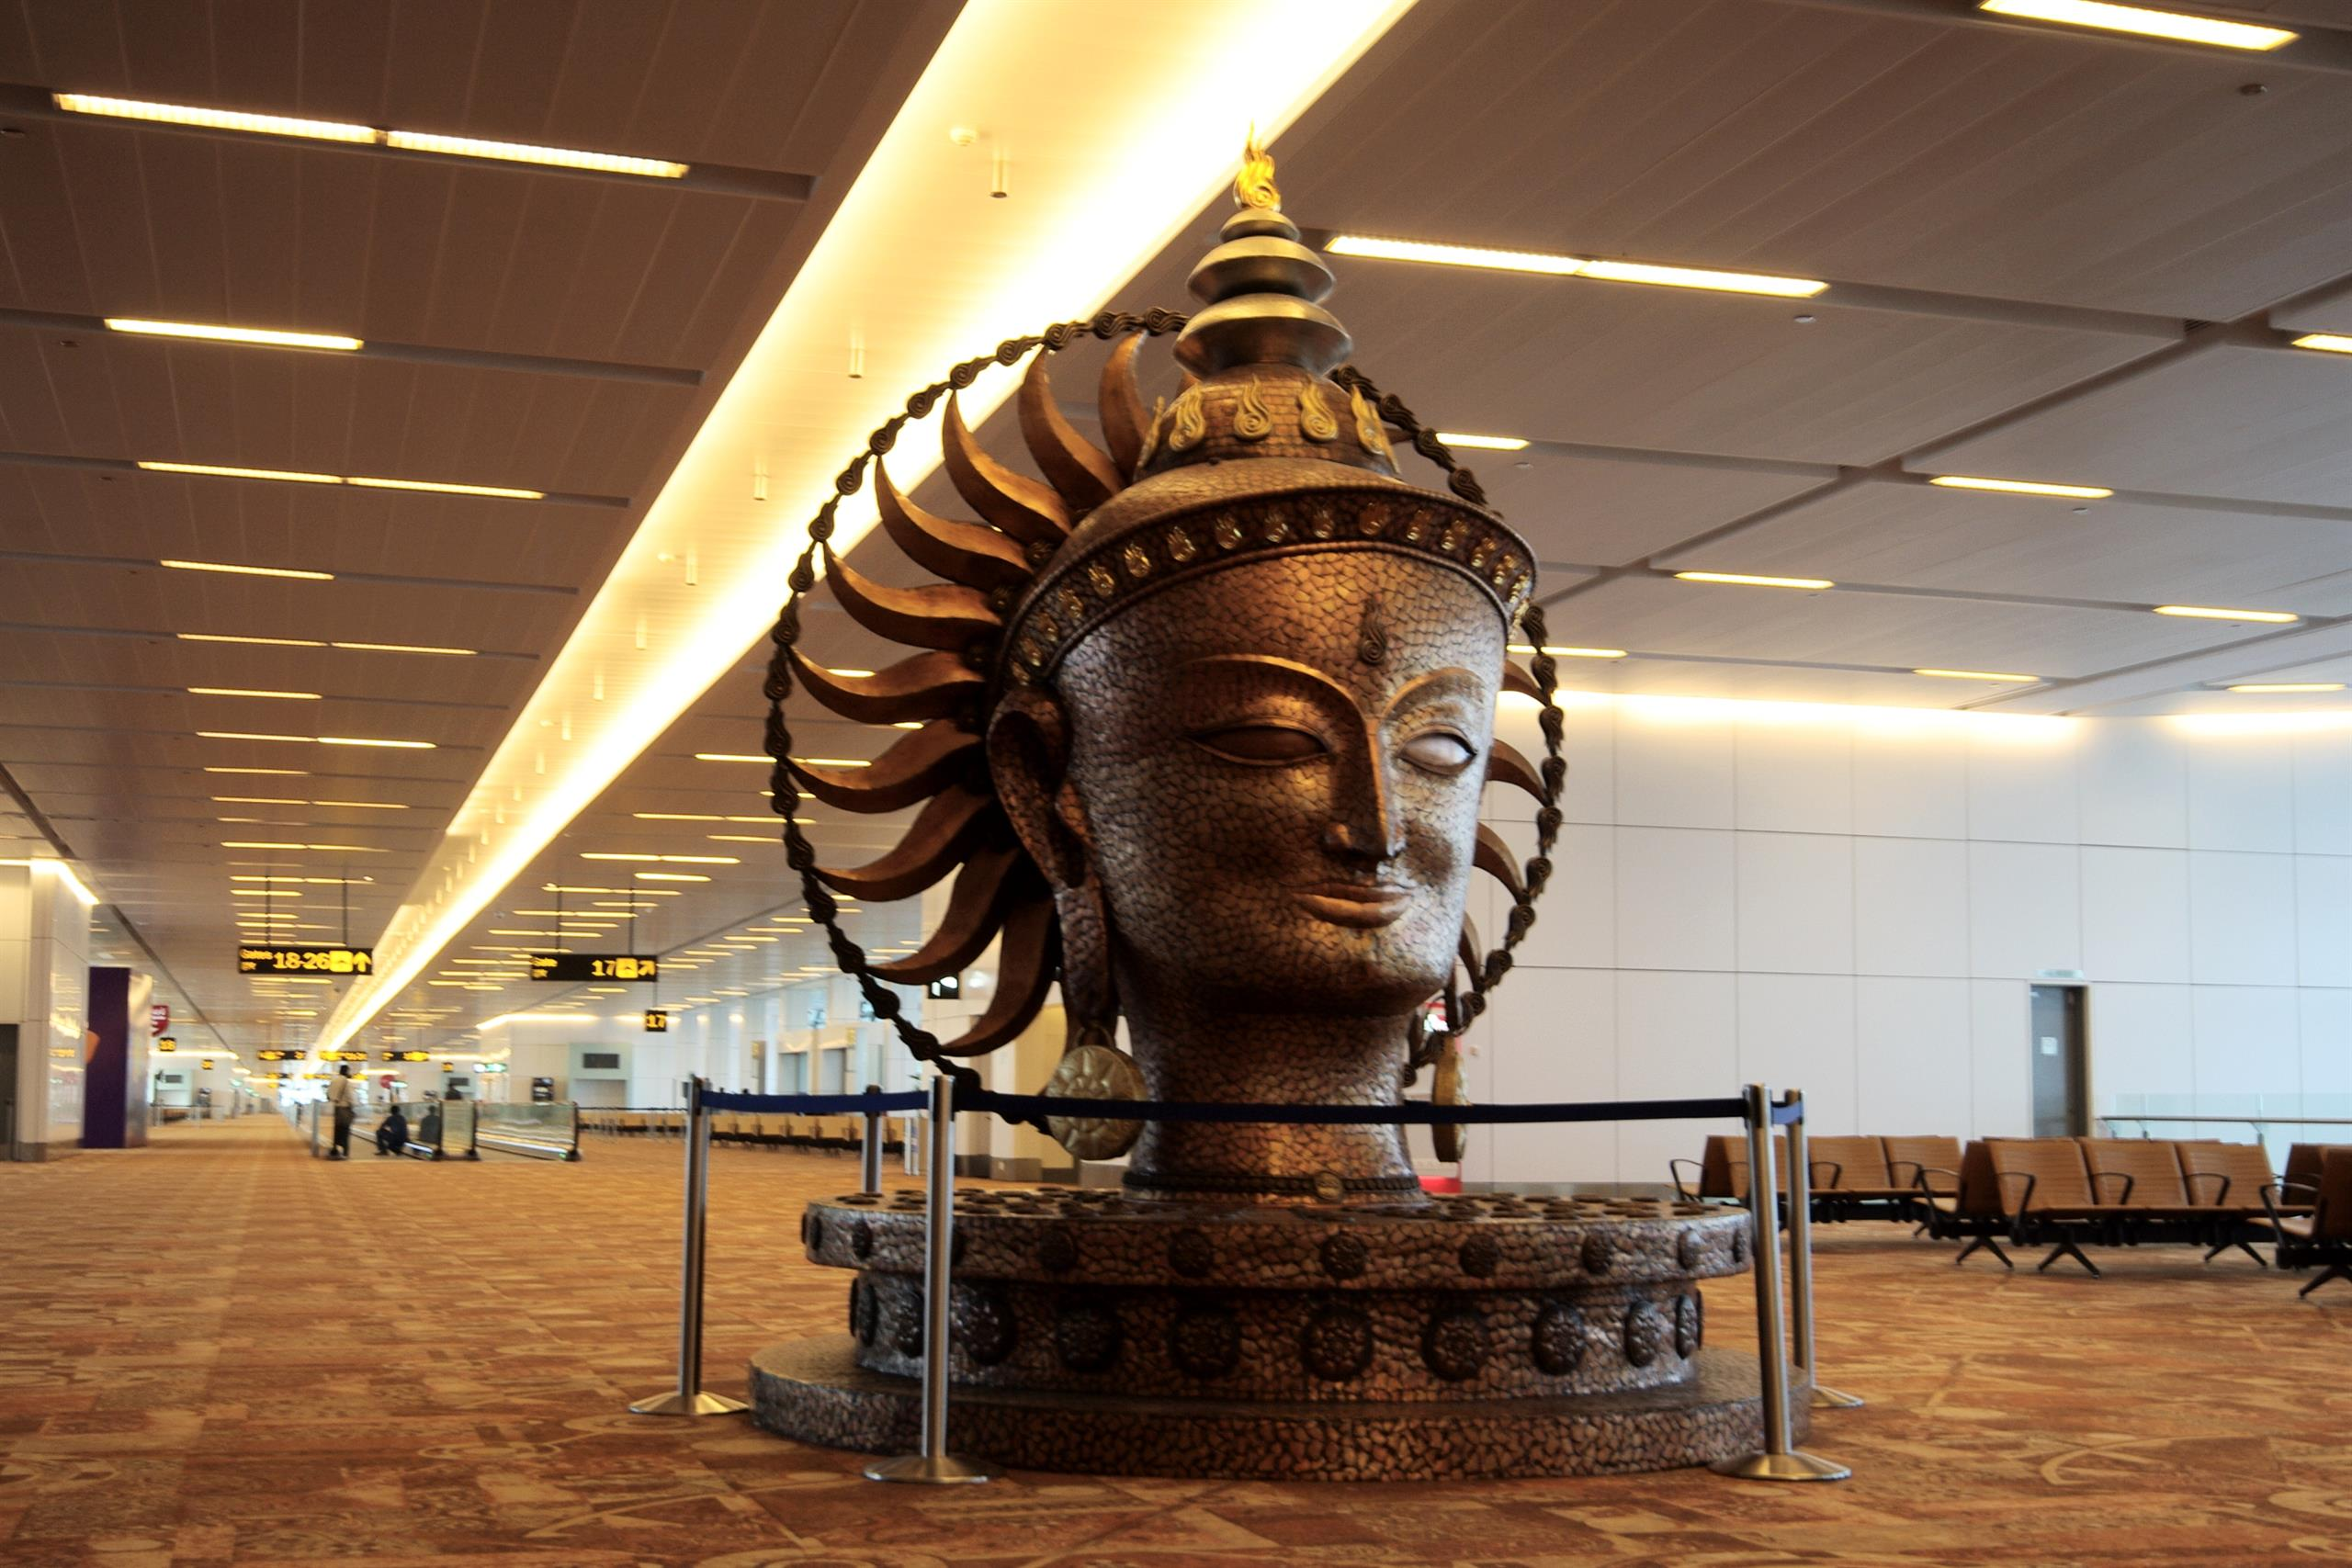 We enabled delivery in only 50 months of Delhi's new airport - one of the world�s largest new-build airport projects, boasting Asia�s longest runway - by sourcing all of the necessary forecasting, planning and design expertise in-house and drawing on our